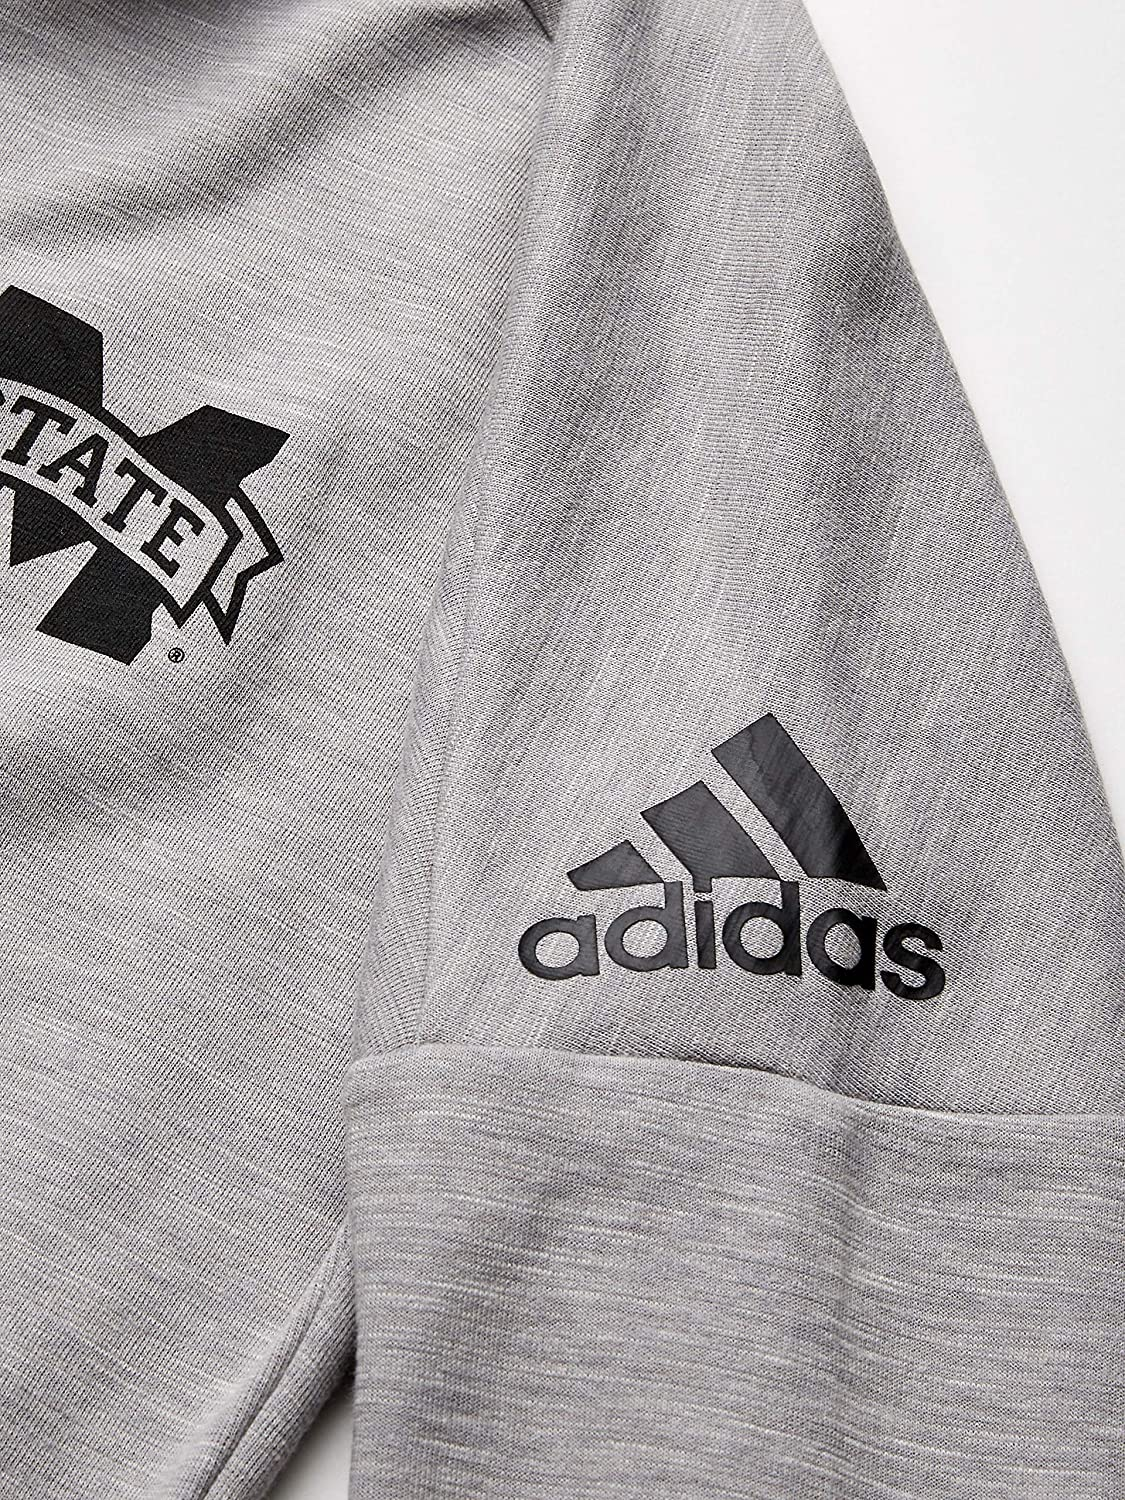 adidas NCAA Full Zip Fleece